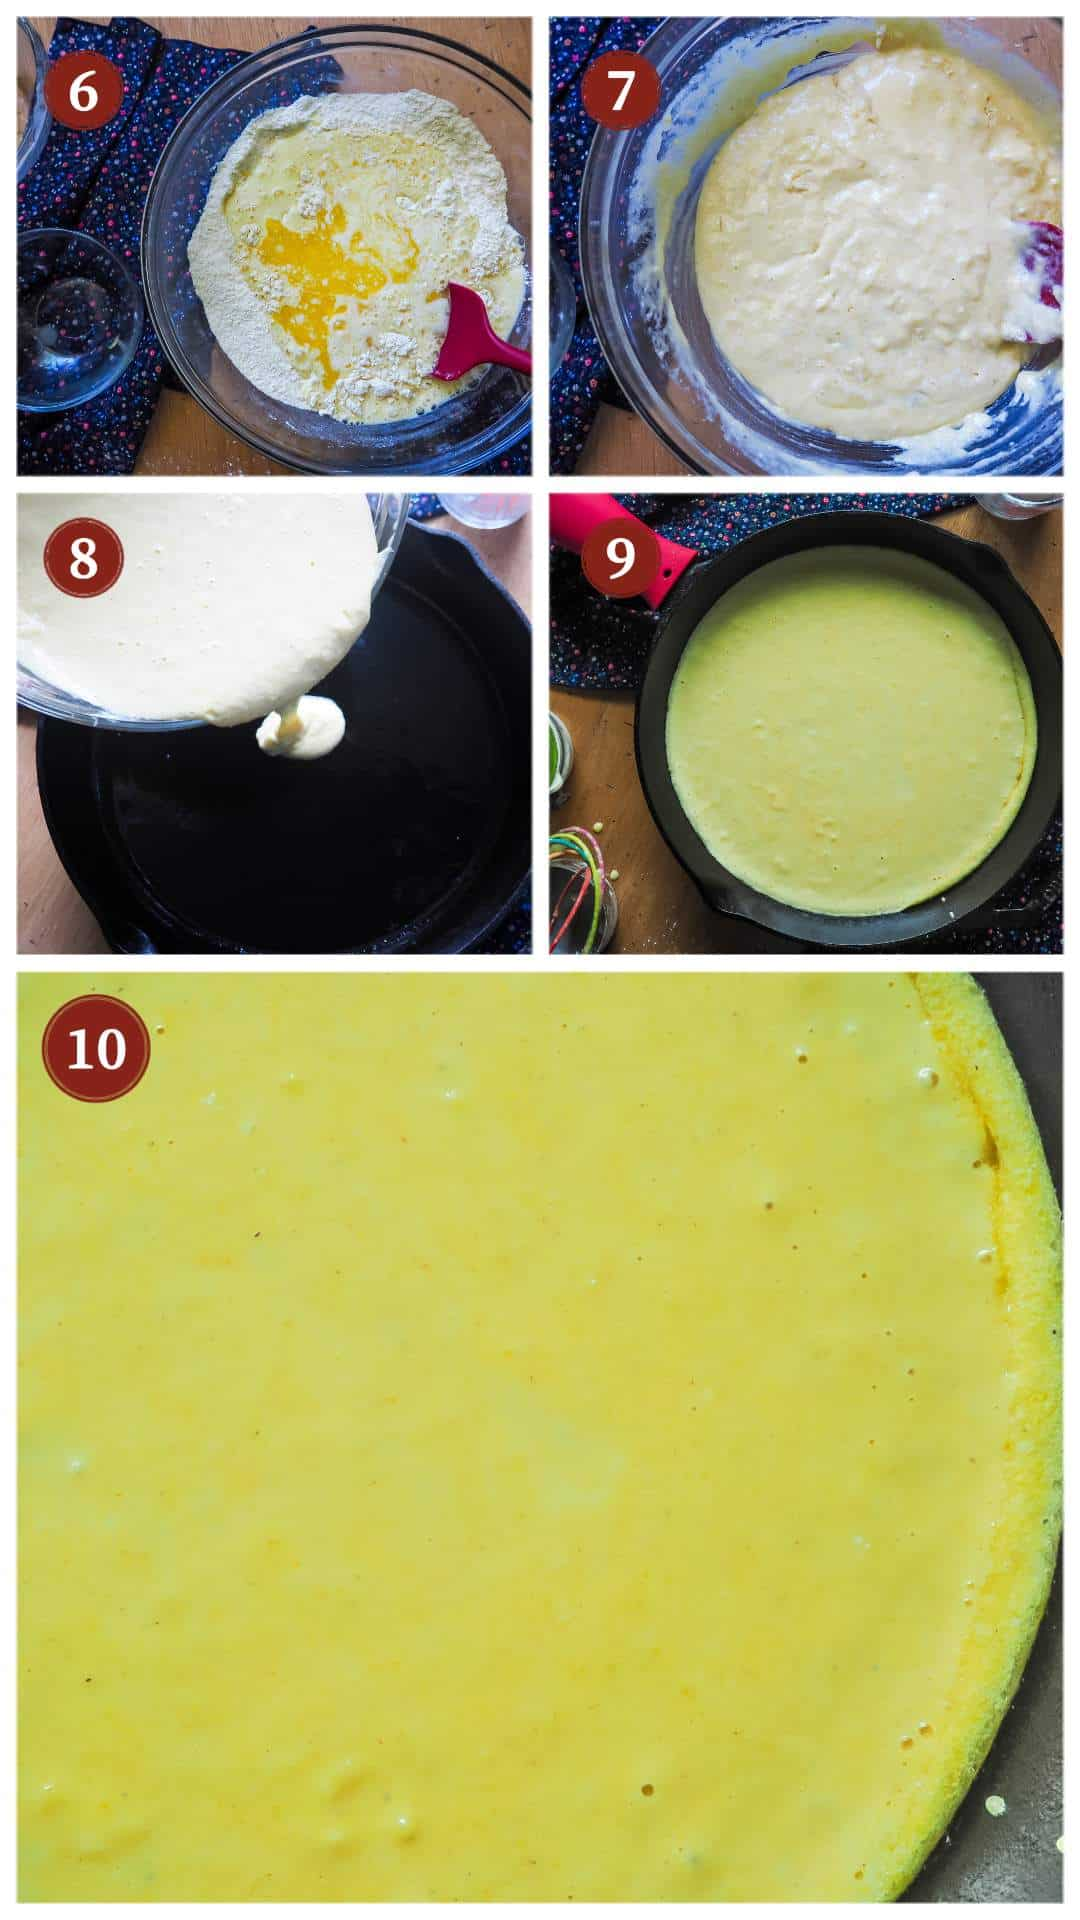 A process collage of images for making skillet cornbread, steps 6 - 10.